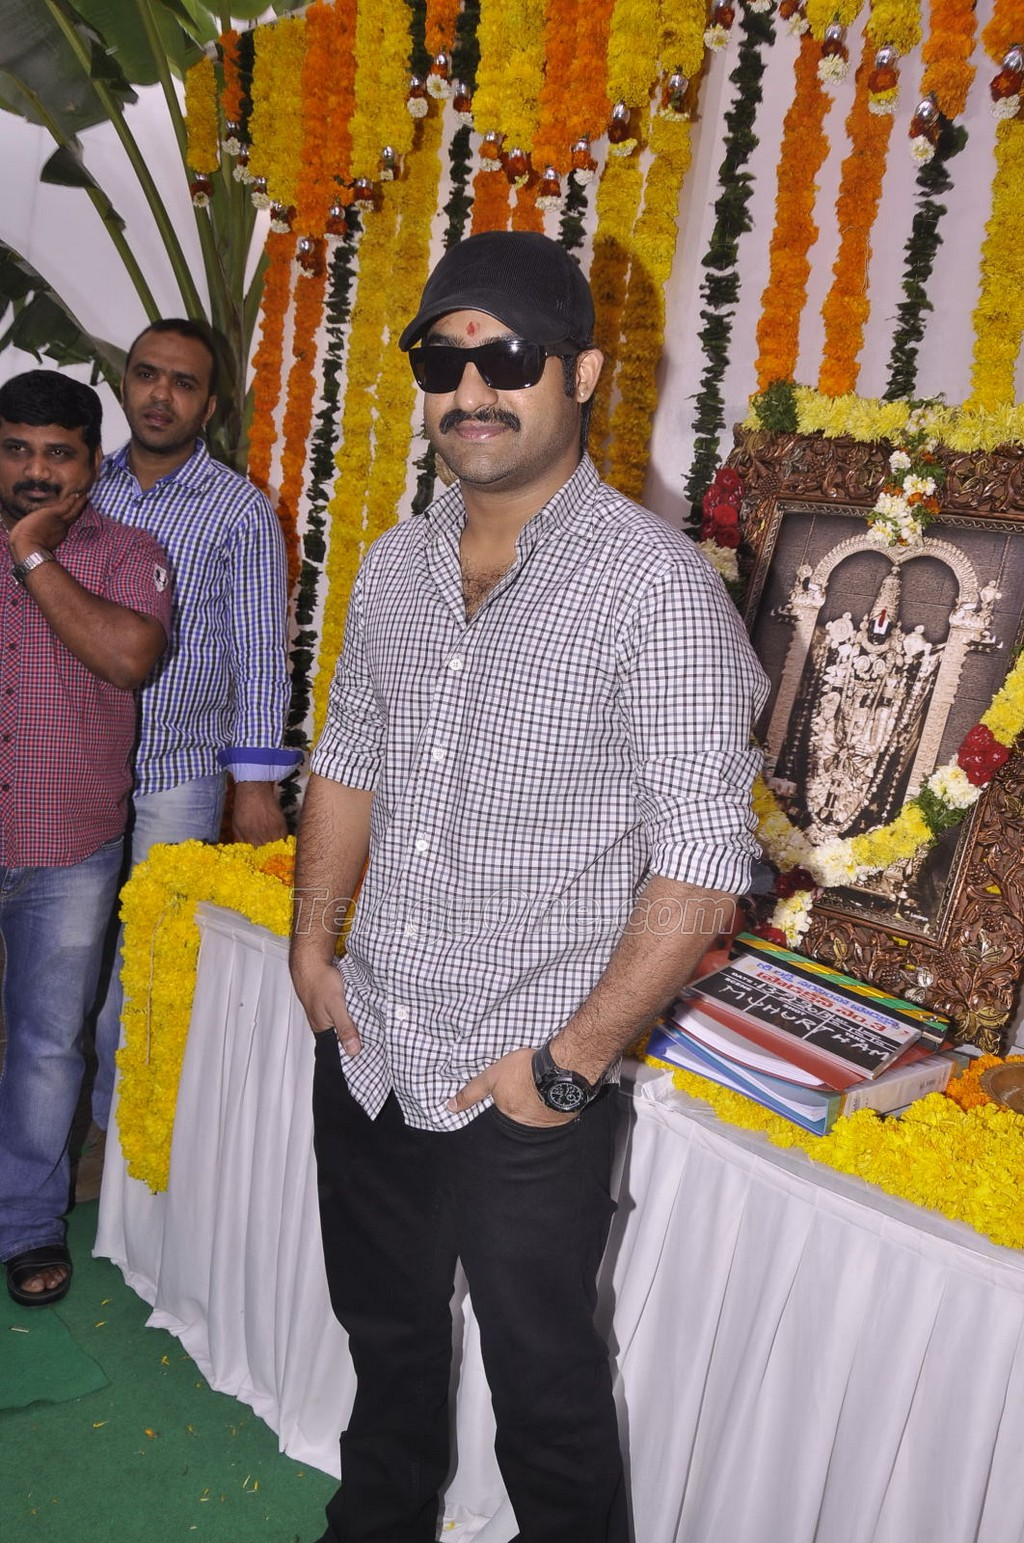 Ntr rabhasa, NTR Rabasa, Rabasa movie, Rabhasa Movie, ntr Rabasa photos, NTR Rabhasa photos